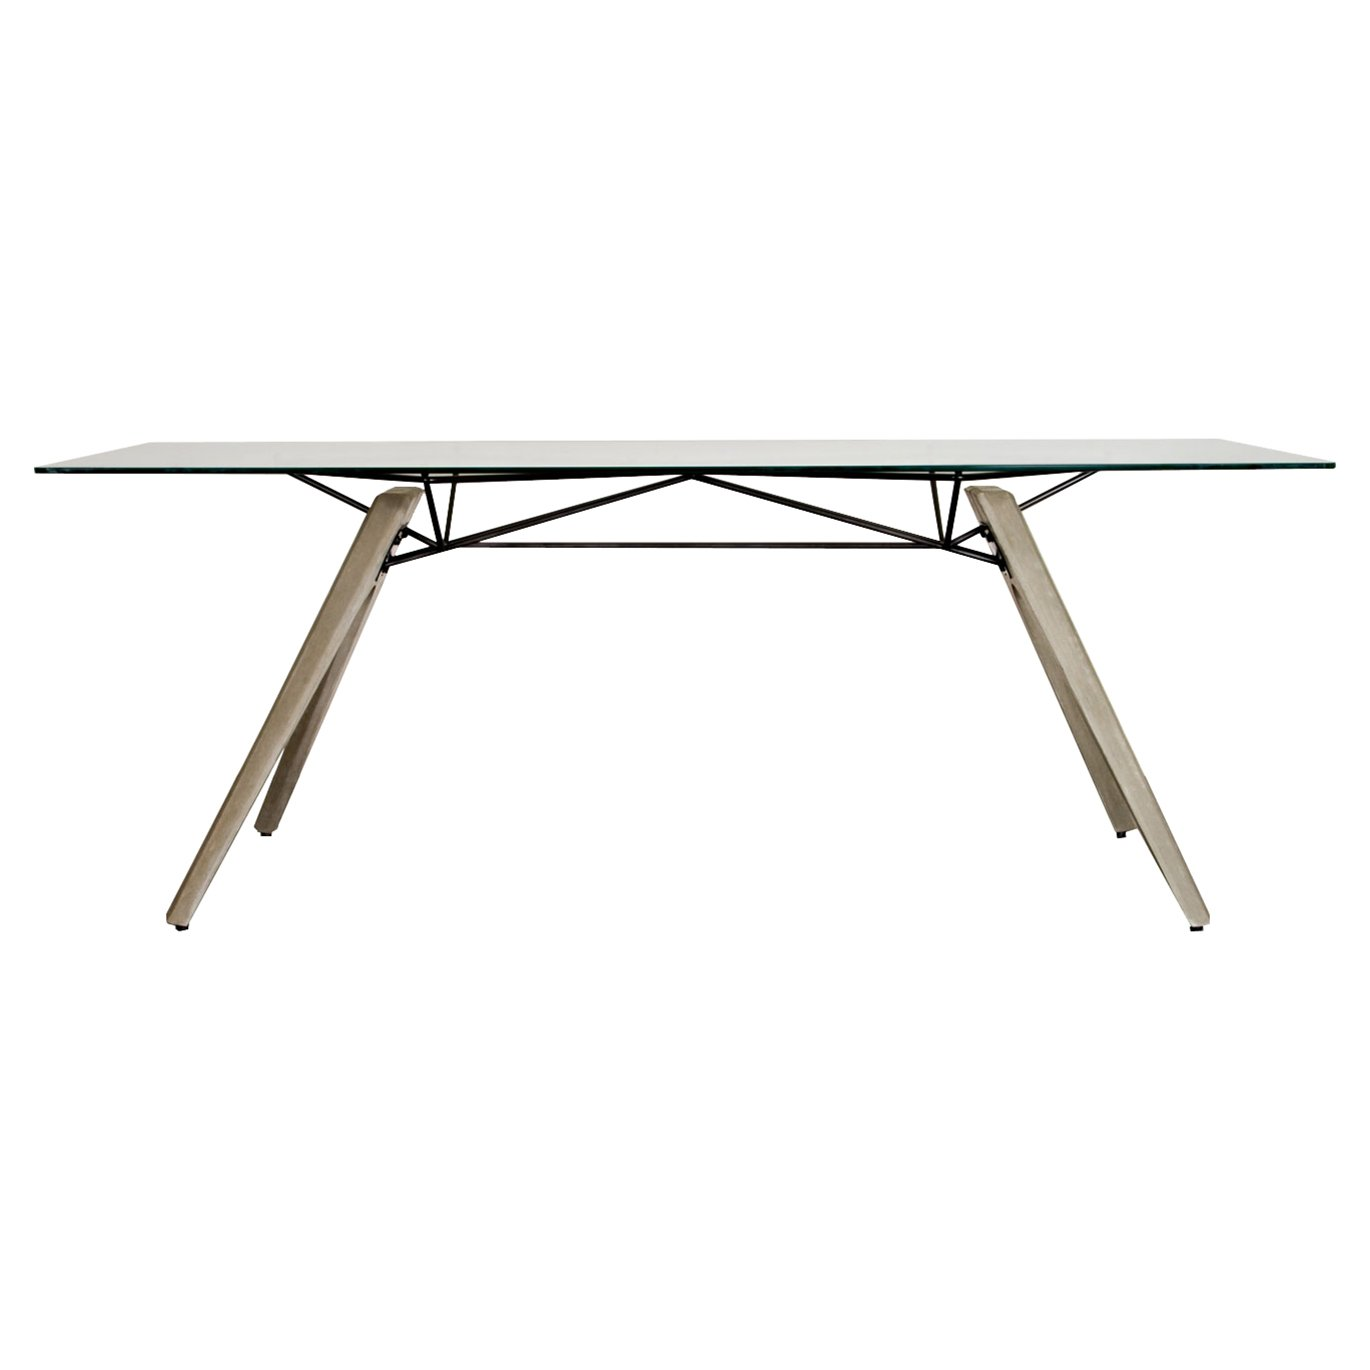 Christian Industrial Loft Glass Concrete Dining Table - 94W